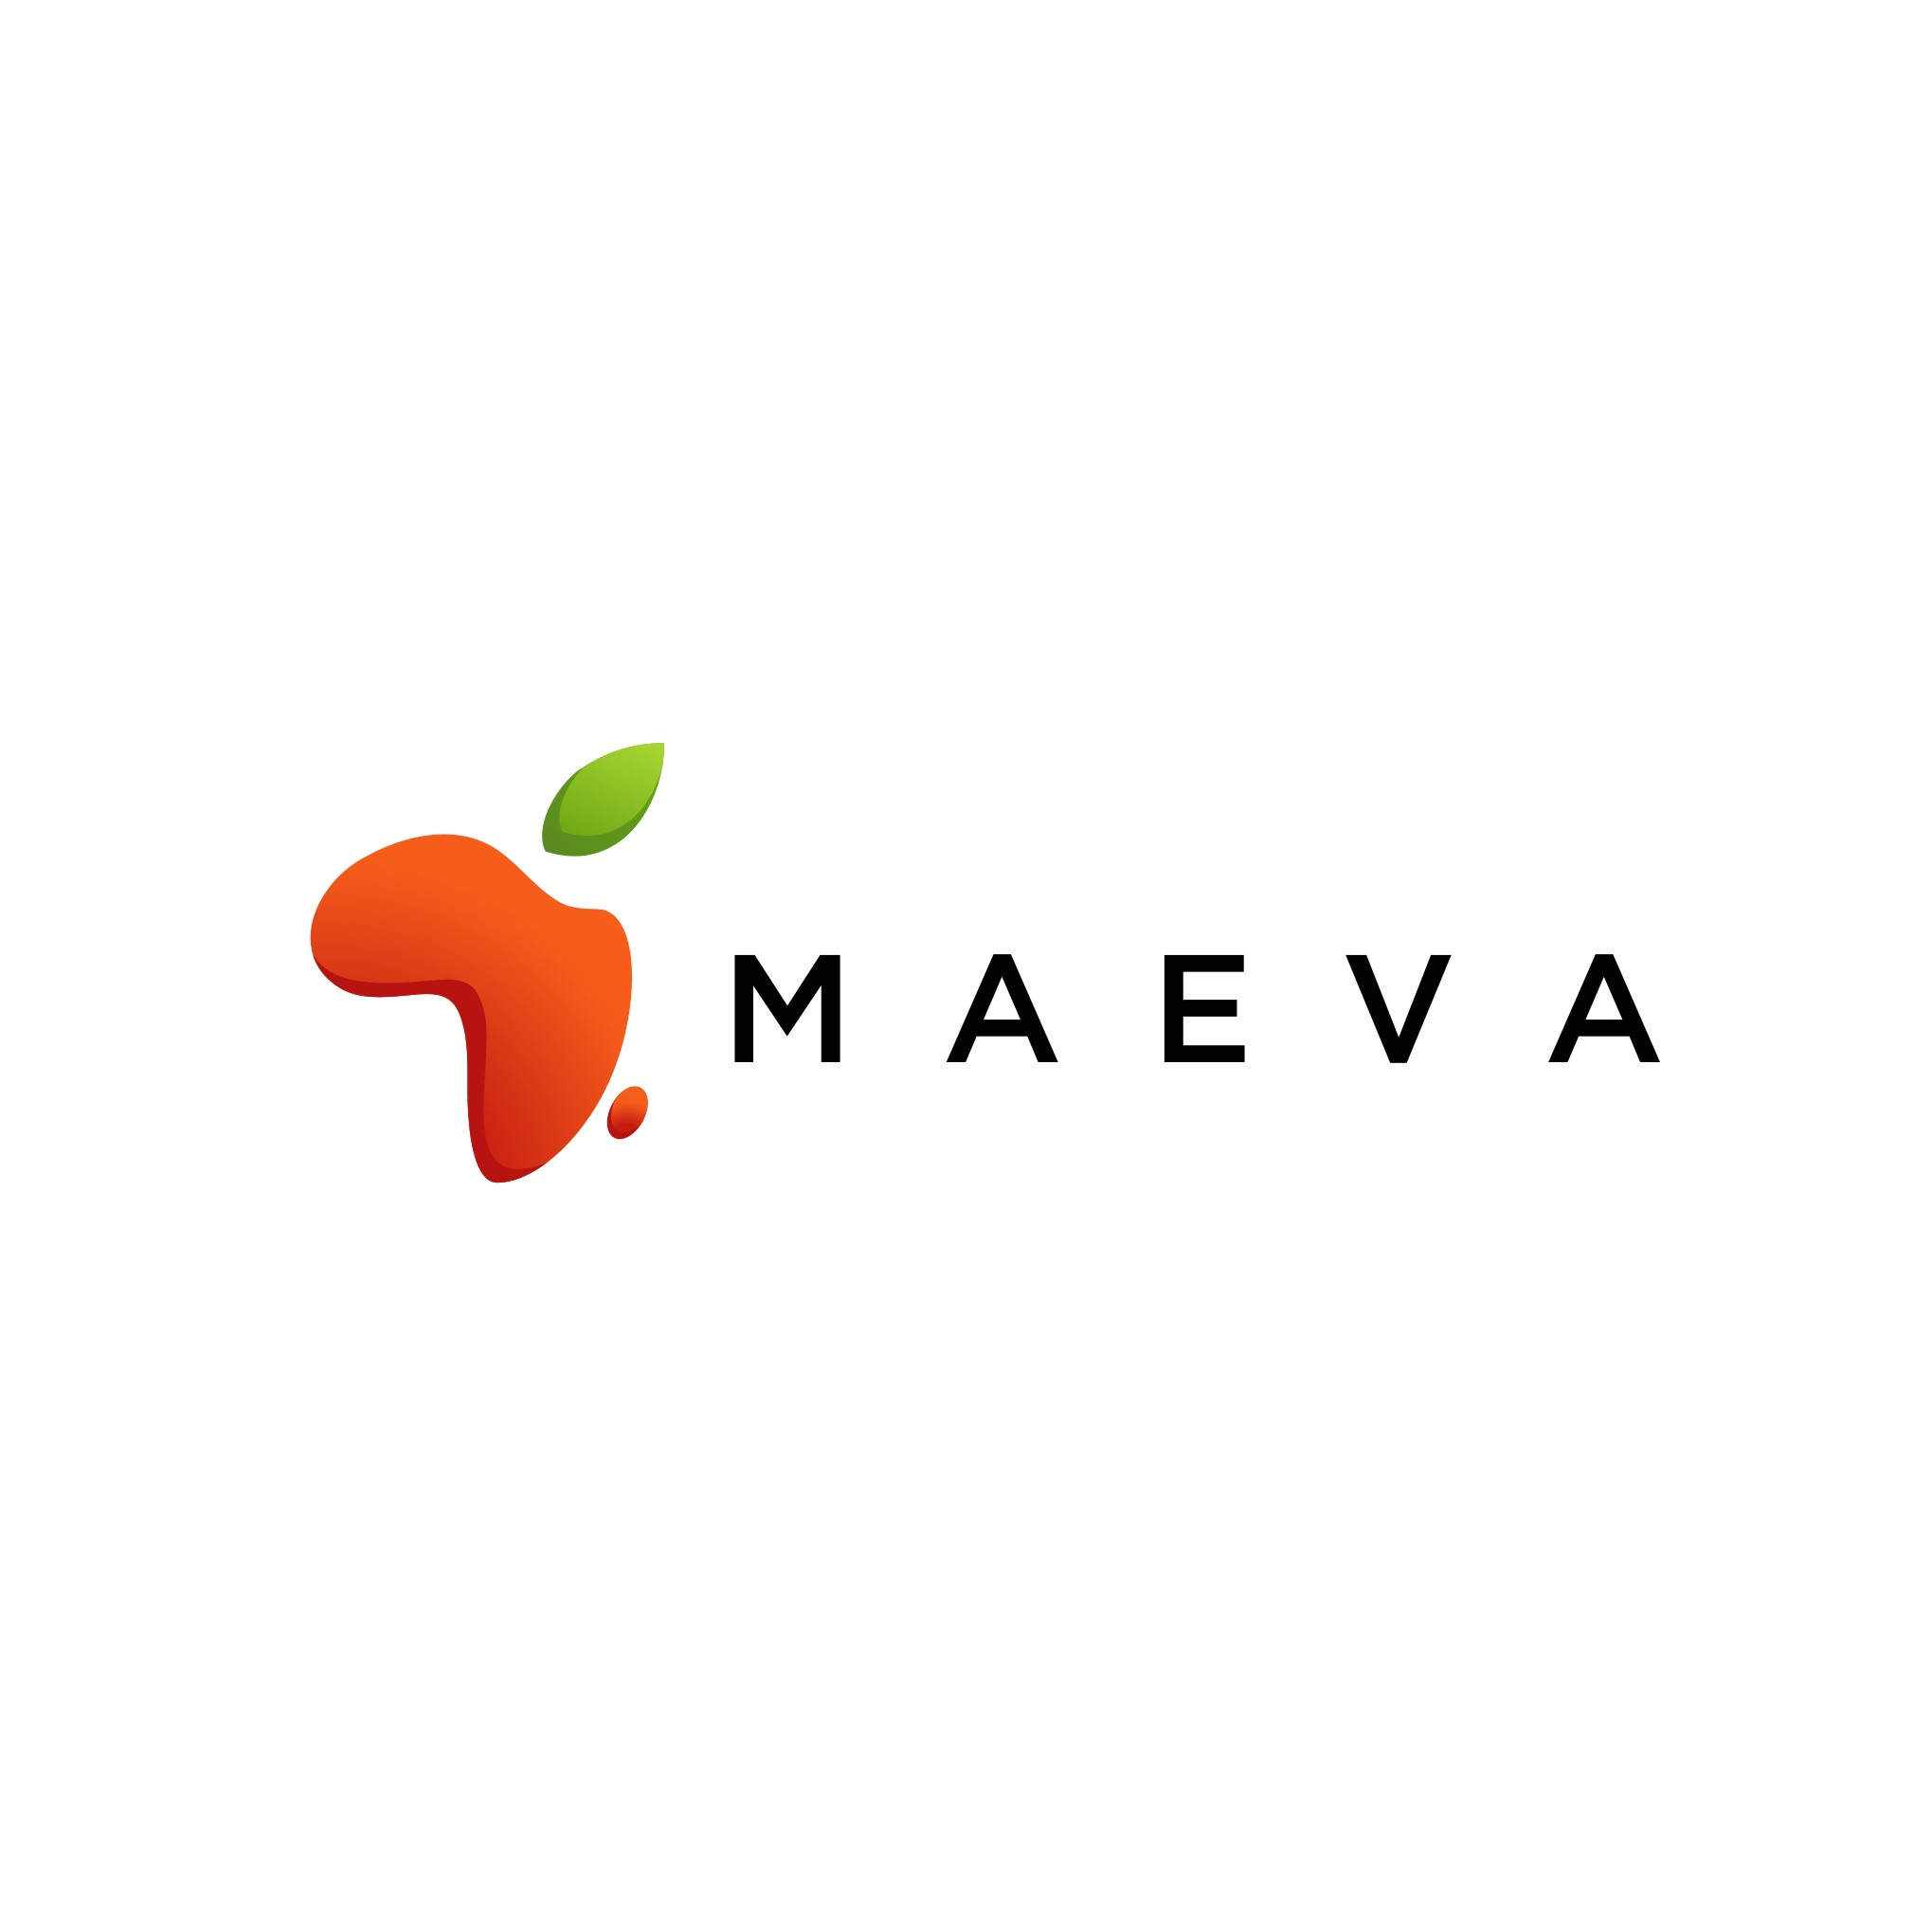 Powerful, but simple logo for a socially responsible African fruit trading company